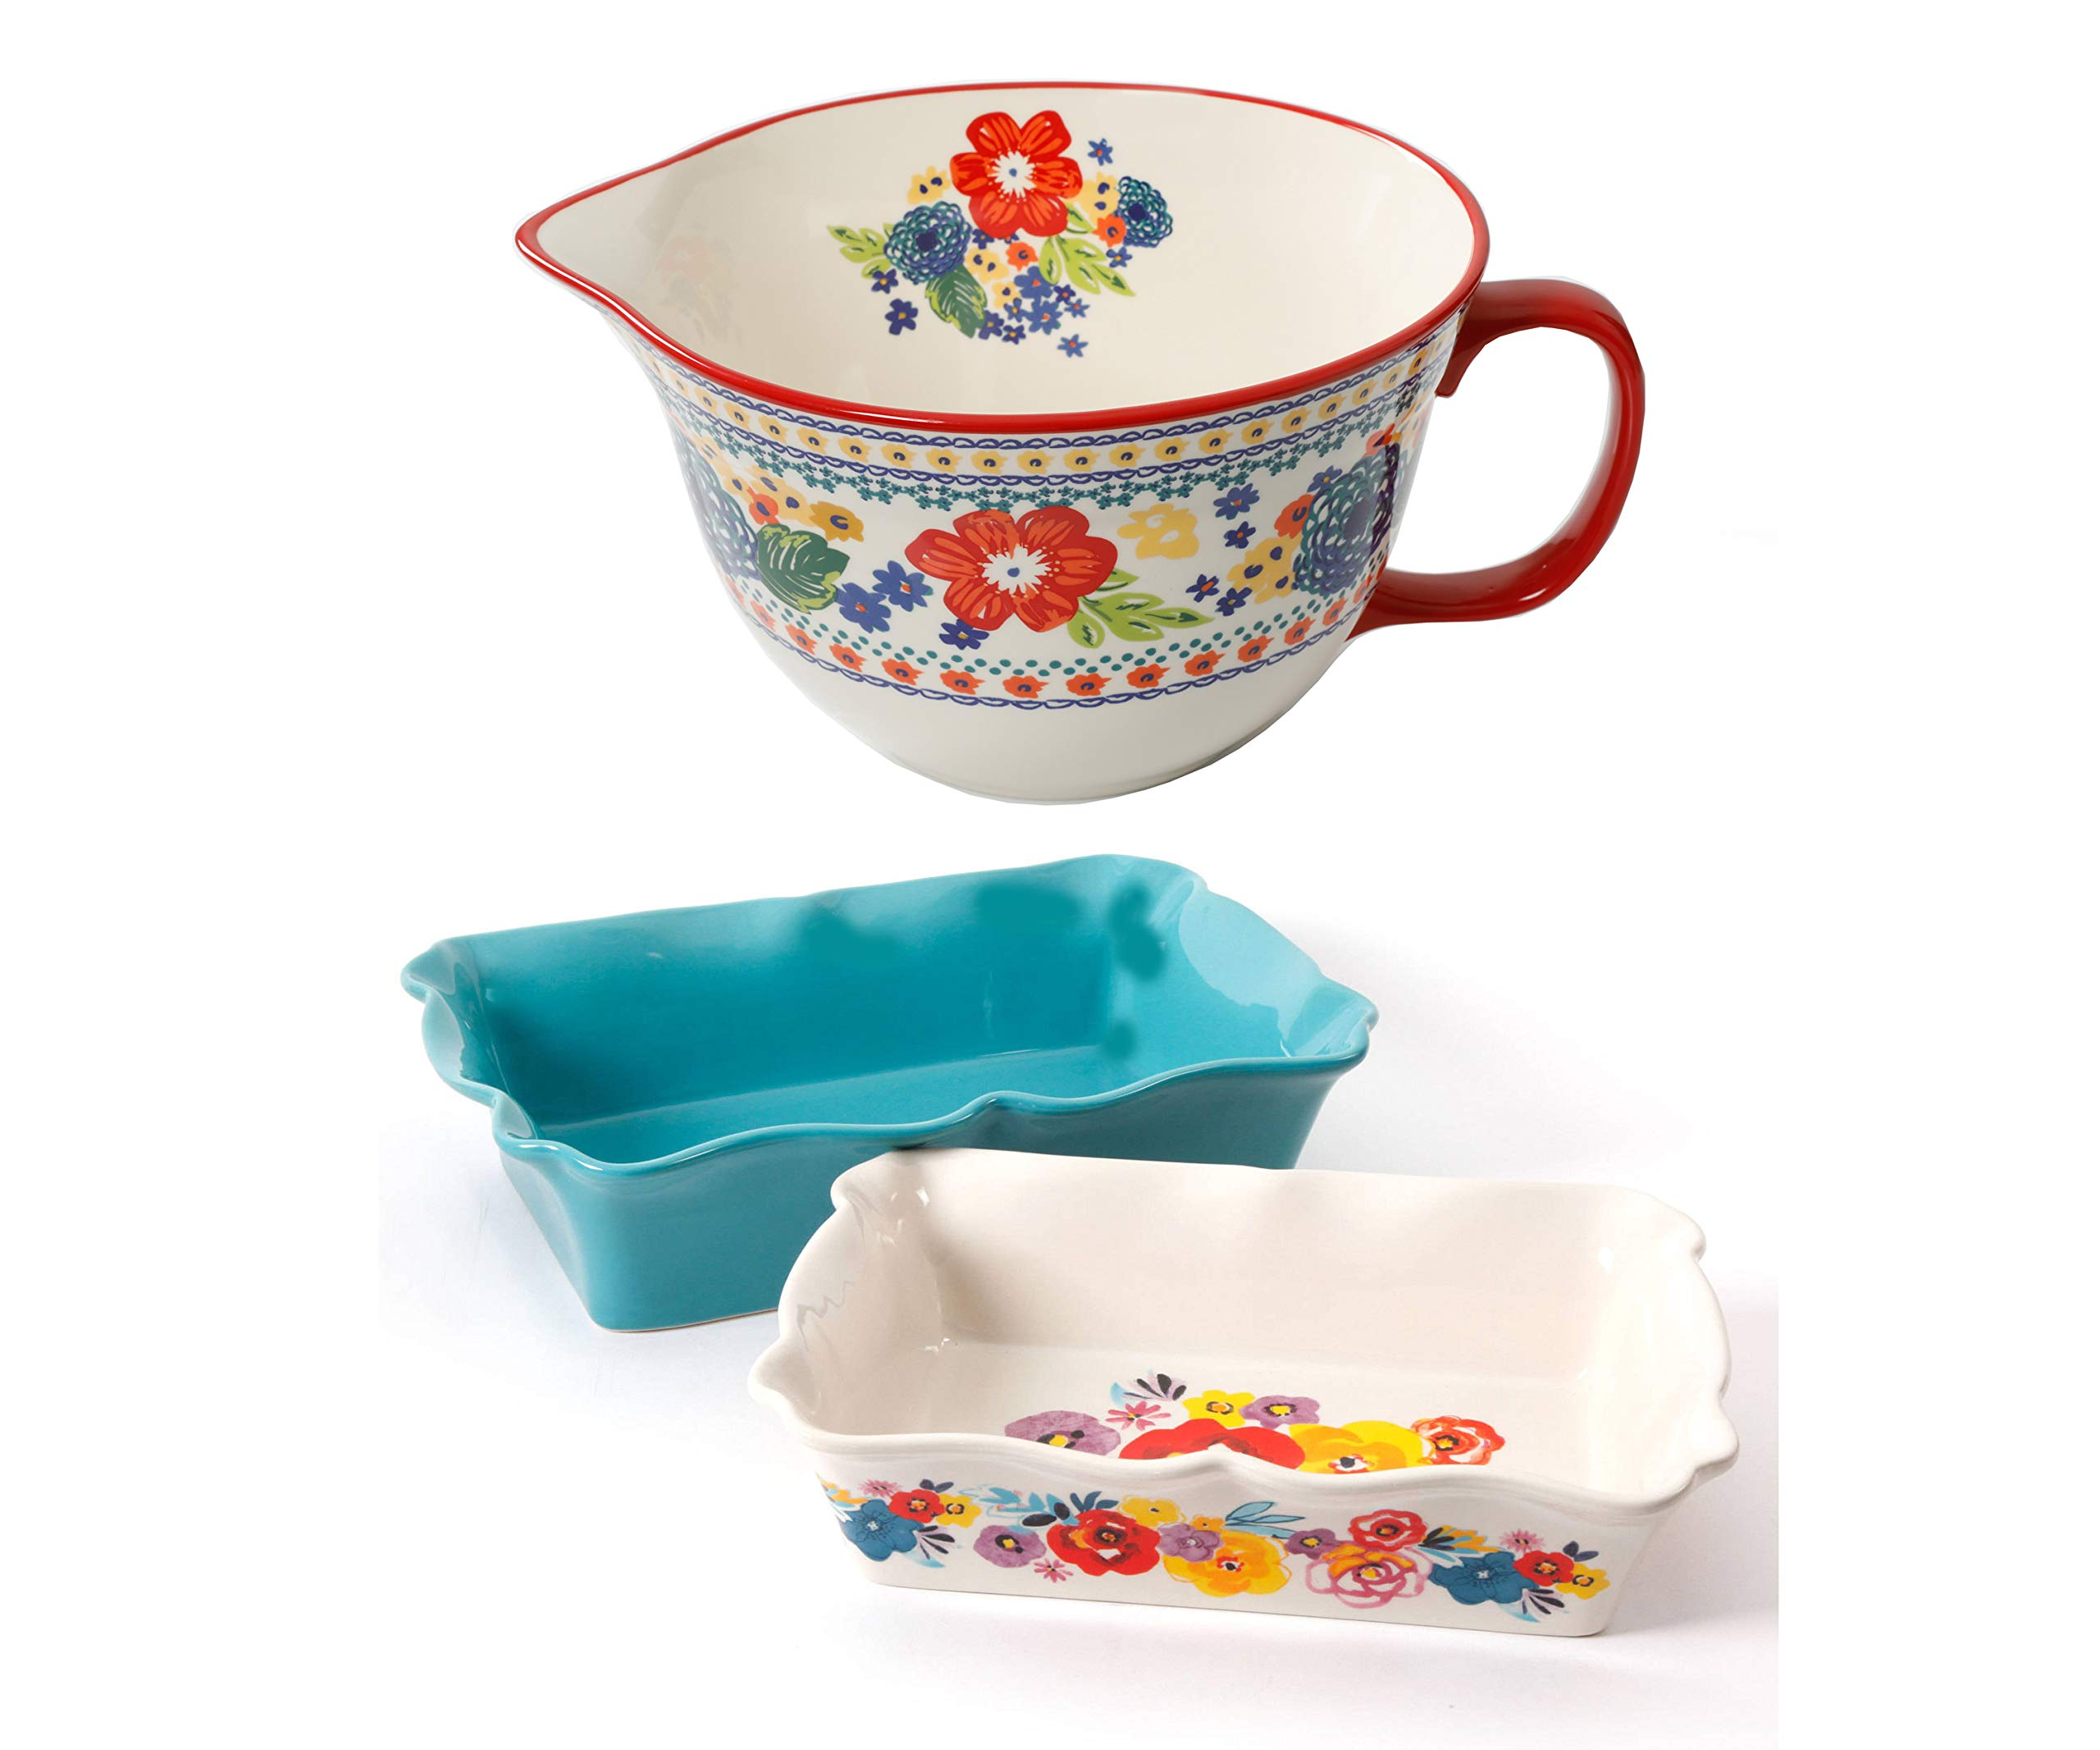 The Pioneer Woman 3.3 Quart Dazzling Dahlias Batter Bowl, 1-Piece bundle with The Pioneer Woman 2-Piece Rectangular Ruffle Top Ceramic Bakeware Set'' by The Pioneer Woman (Image #1)